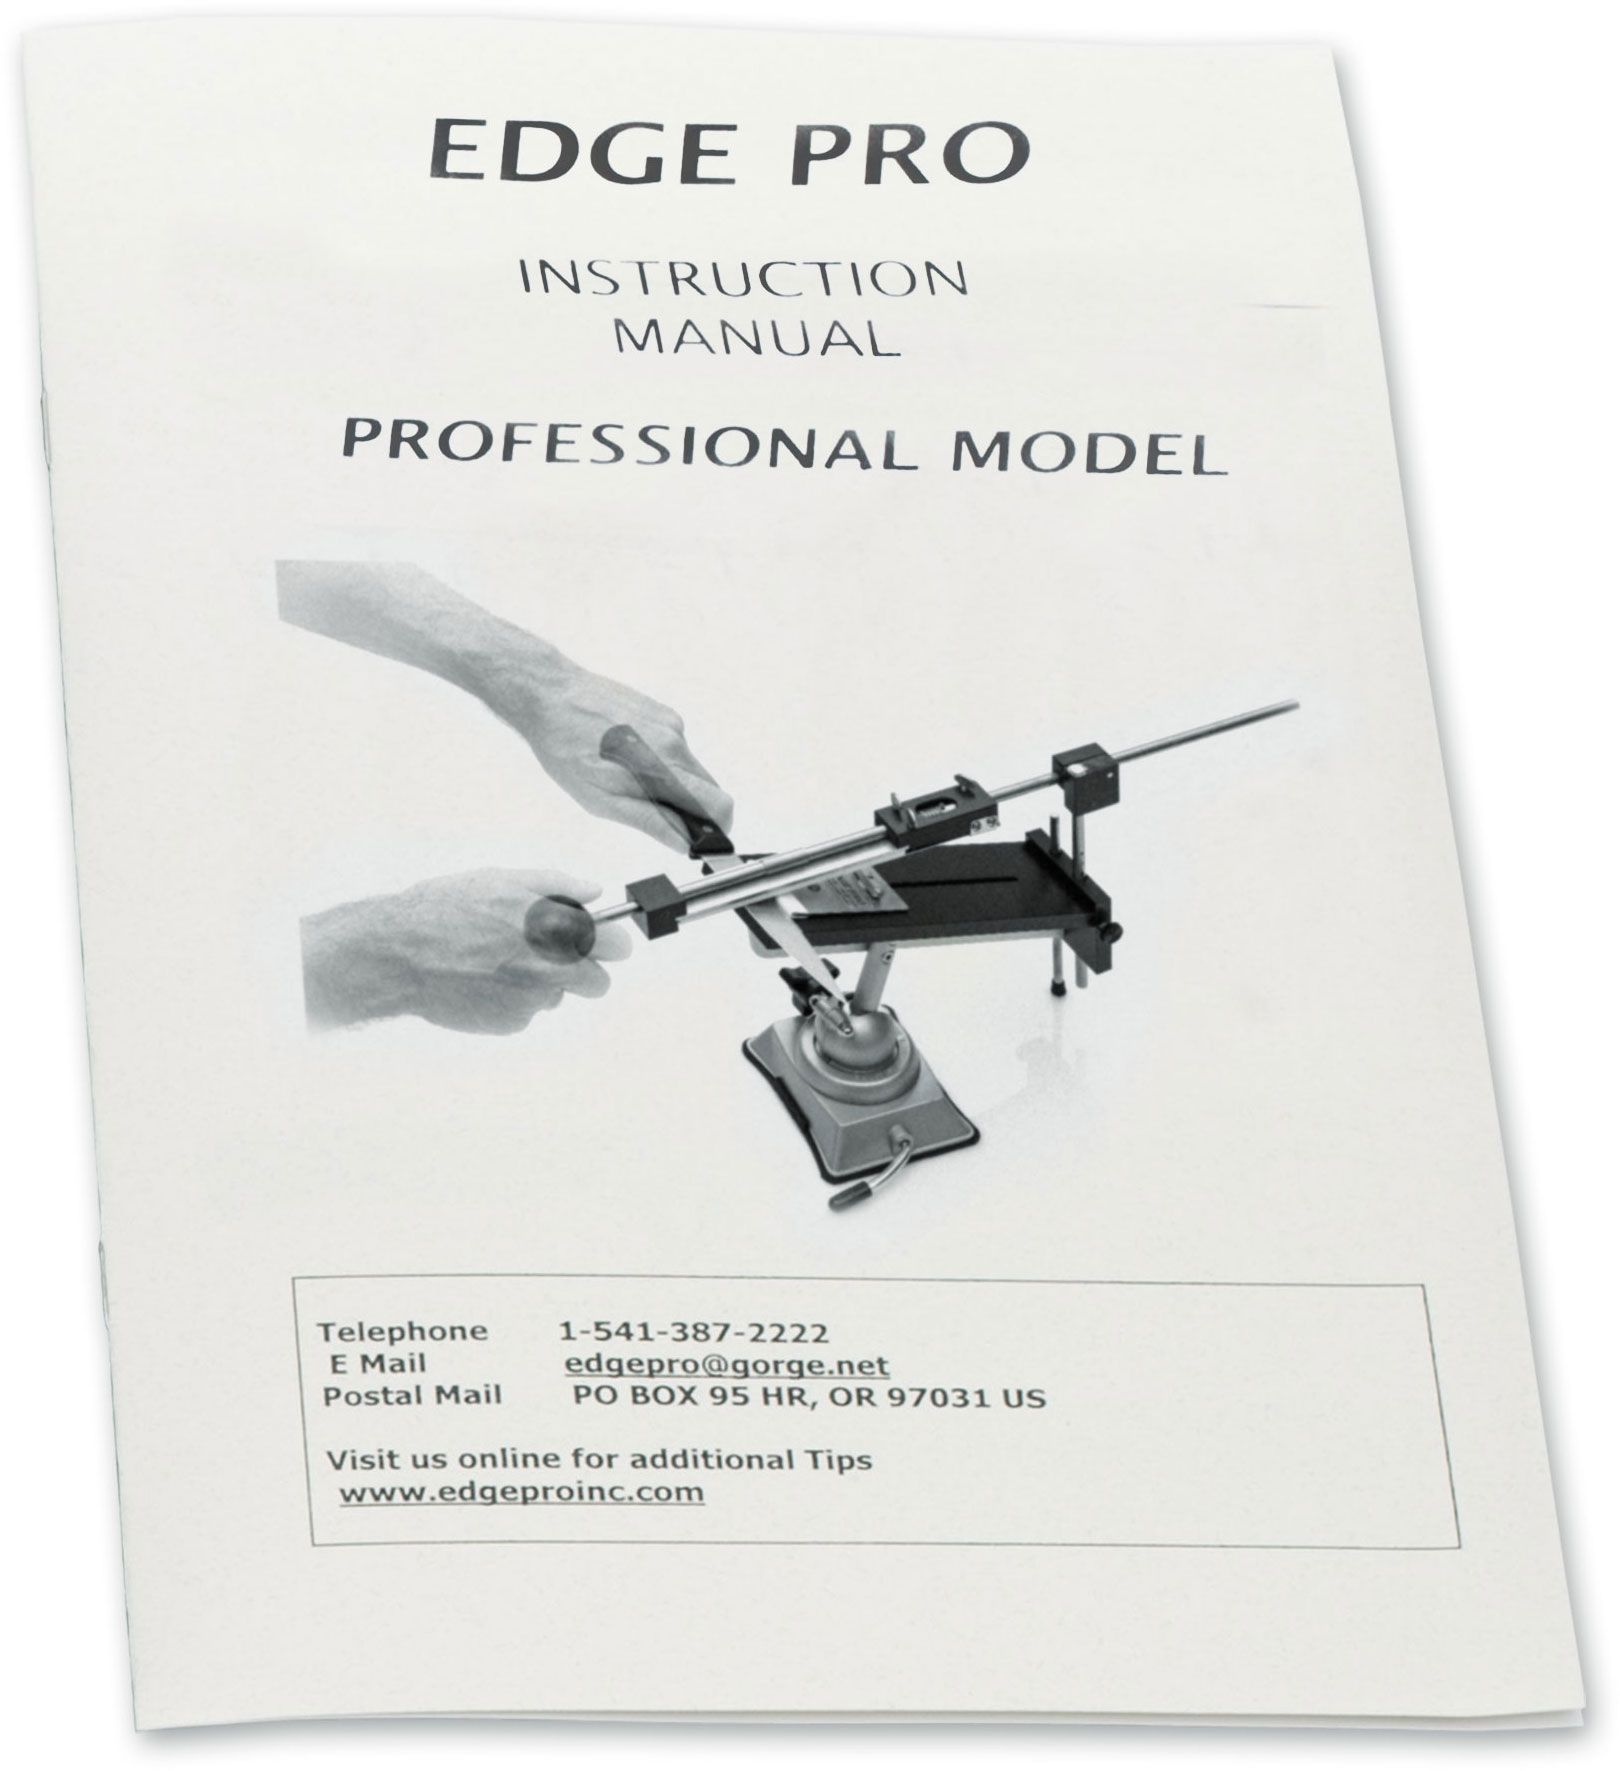 Edge Pro Professional Knife Sharpening System Manual